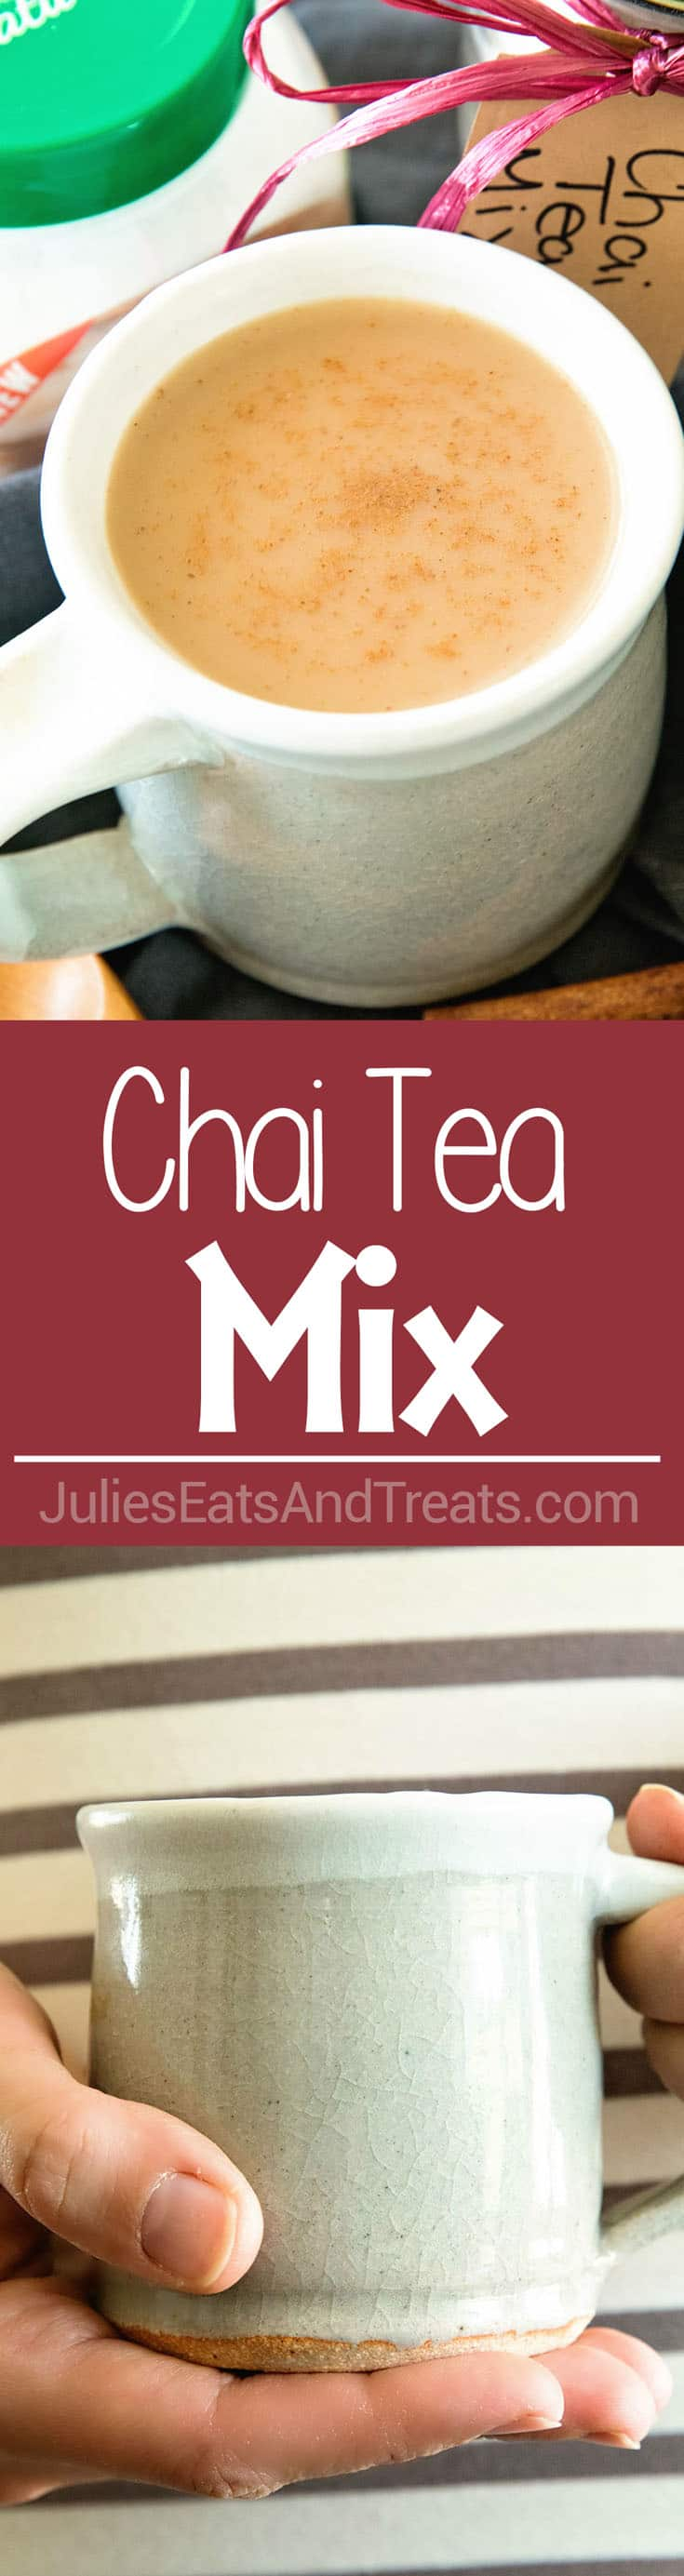 Chai Tea Mix ~ Easy Directions on How To Make Homemade Chai Tea Mix! Perfect for When You Want a Quick Cup of Chai Tea at Home!